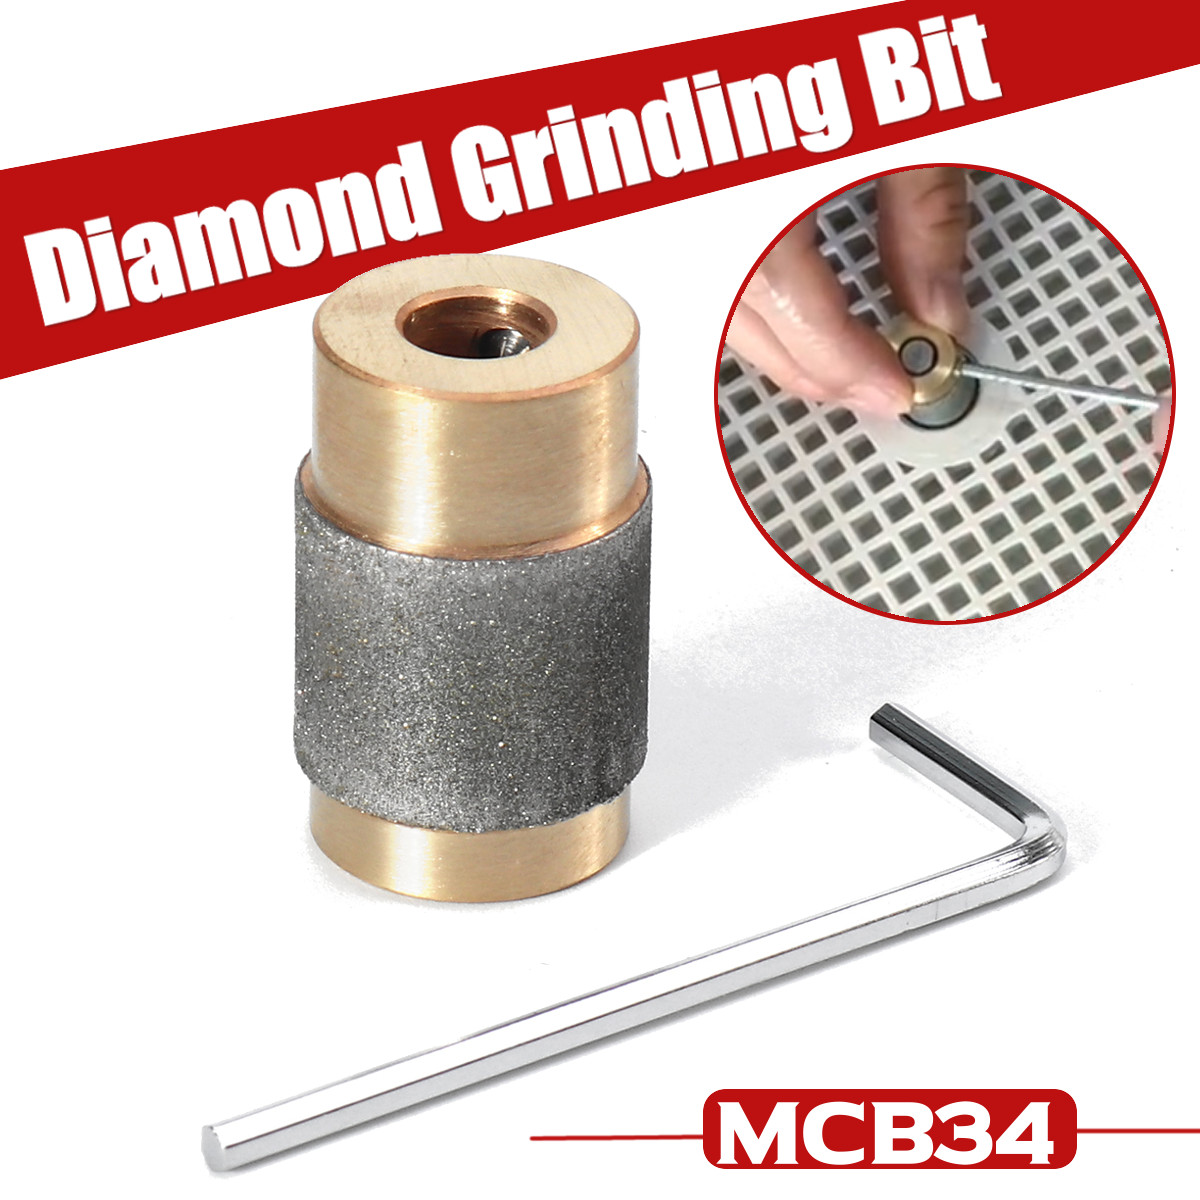 3/4 Inch MCB34 Grinding Bit Brass Core Standard Grit Stained Stained Glass Grinder Head Diamond Copper Grinder